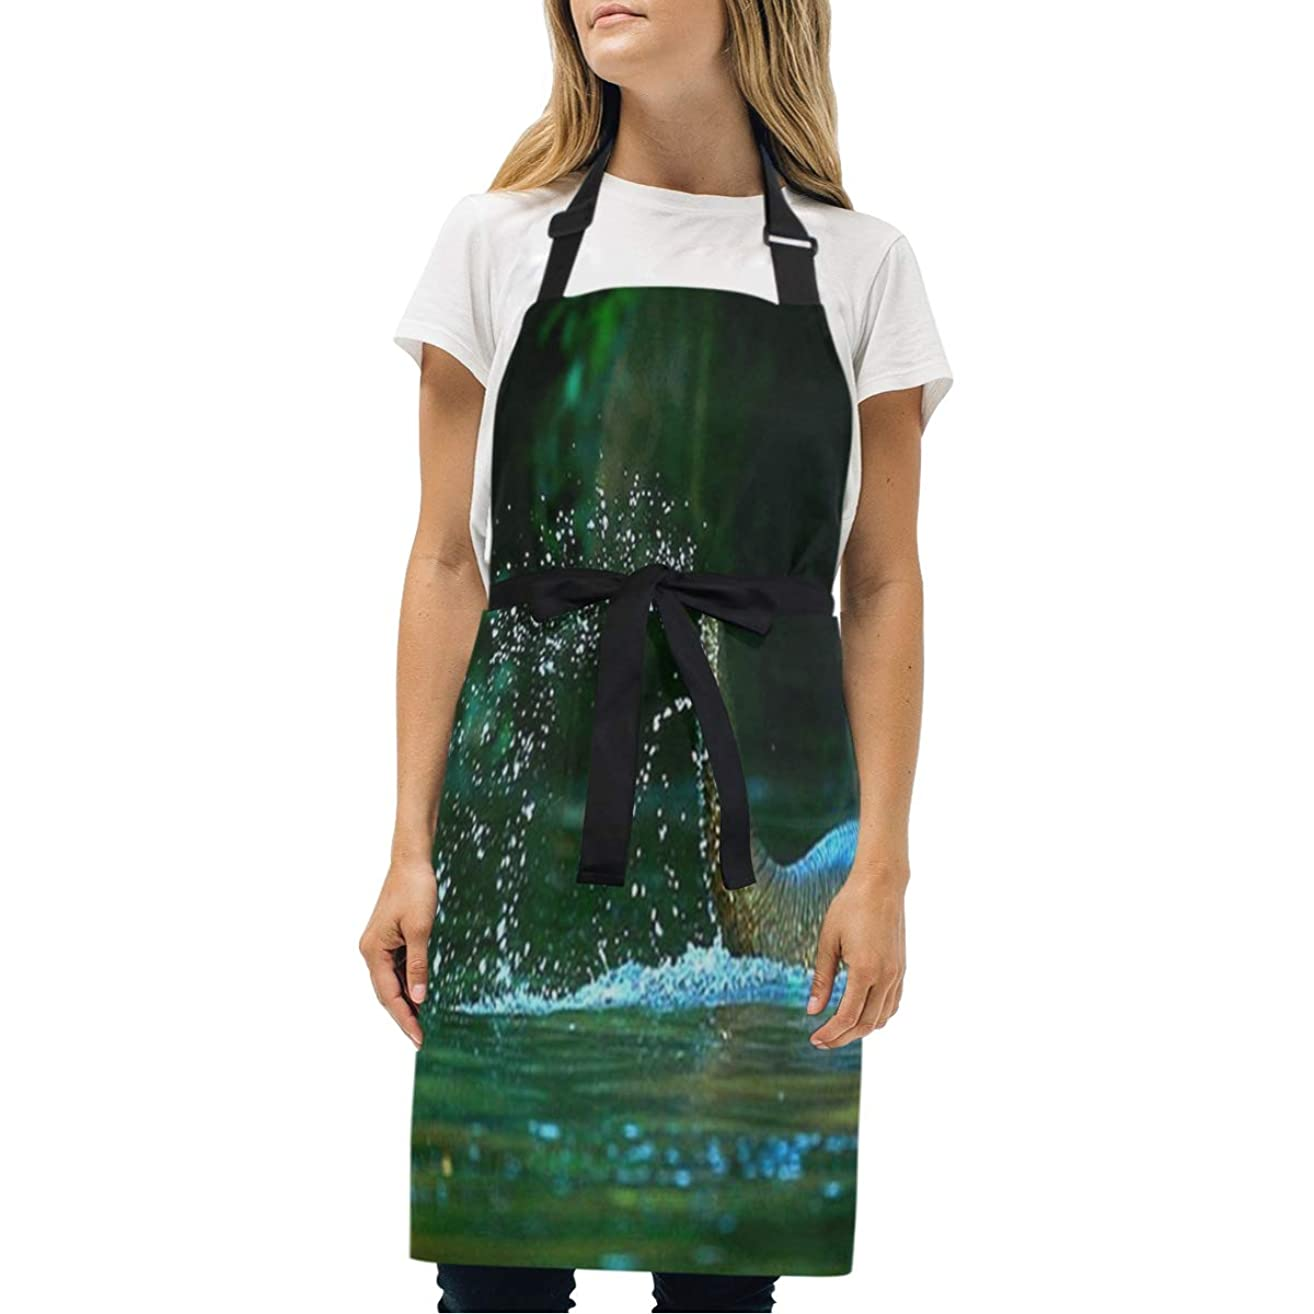 HJudge Womens Aprons Elephant Water Kitchen Bib Aprons with Pockets Adjustable Buckle on Neck